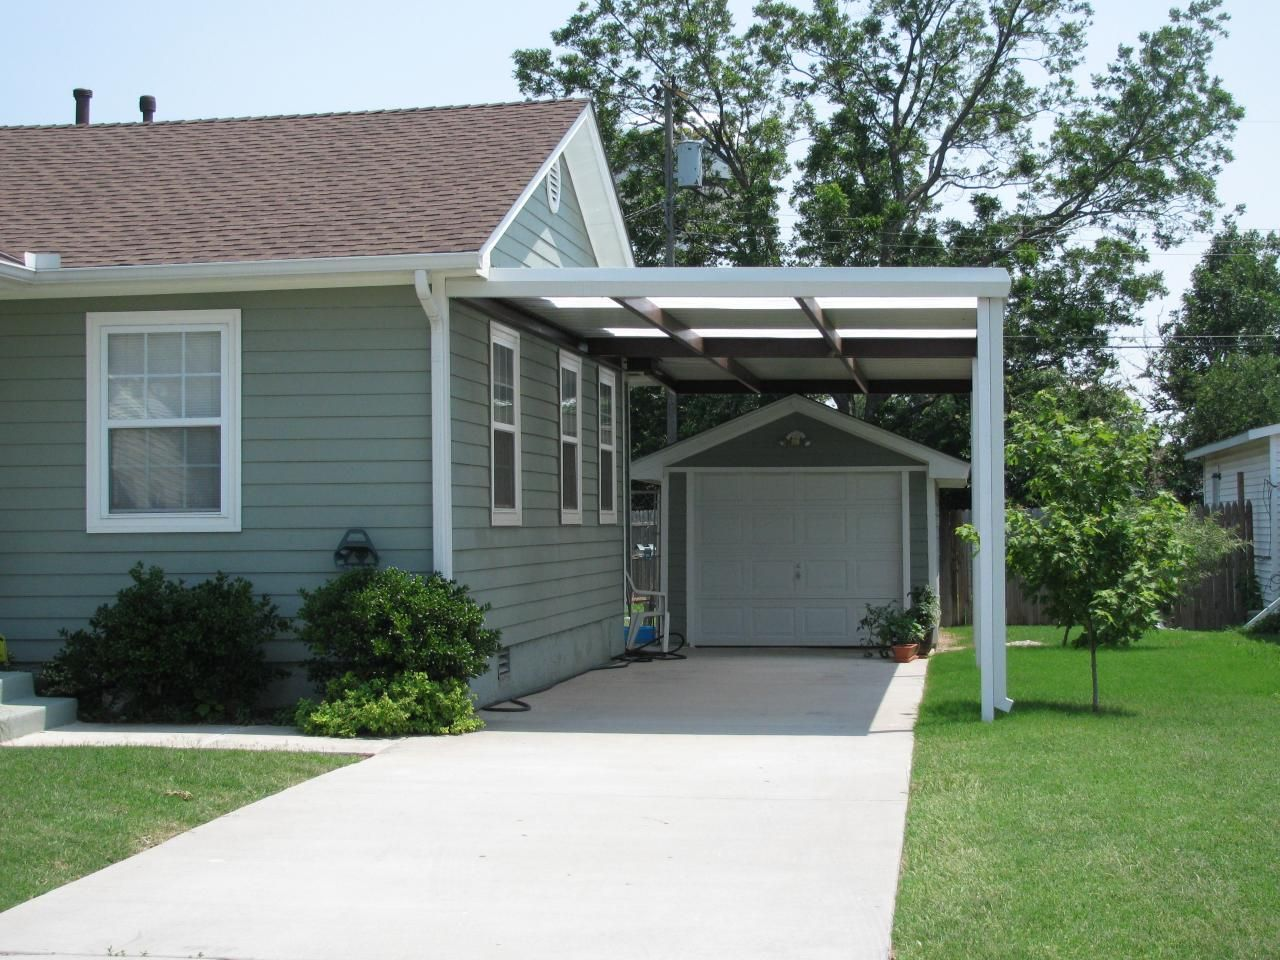 Carport vs Garage Carport designs, Carport plans, Diy